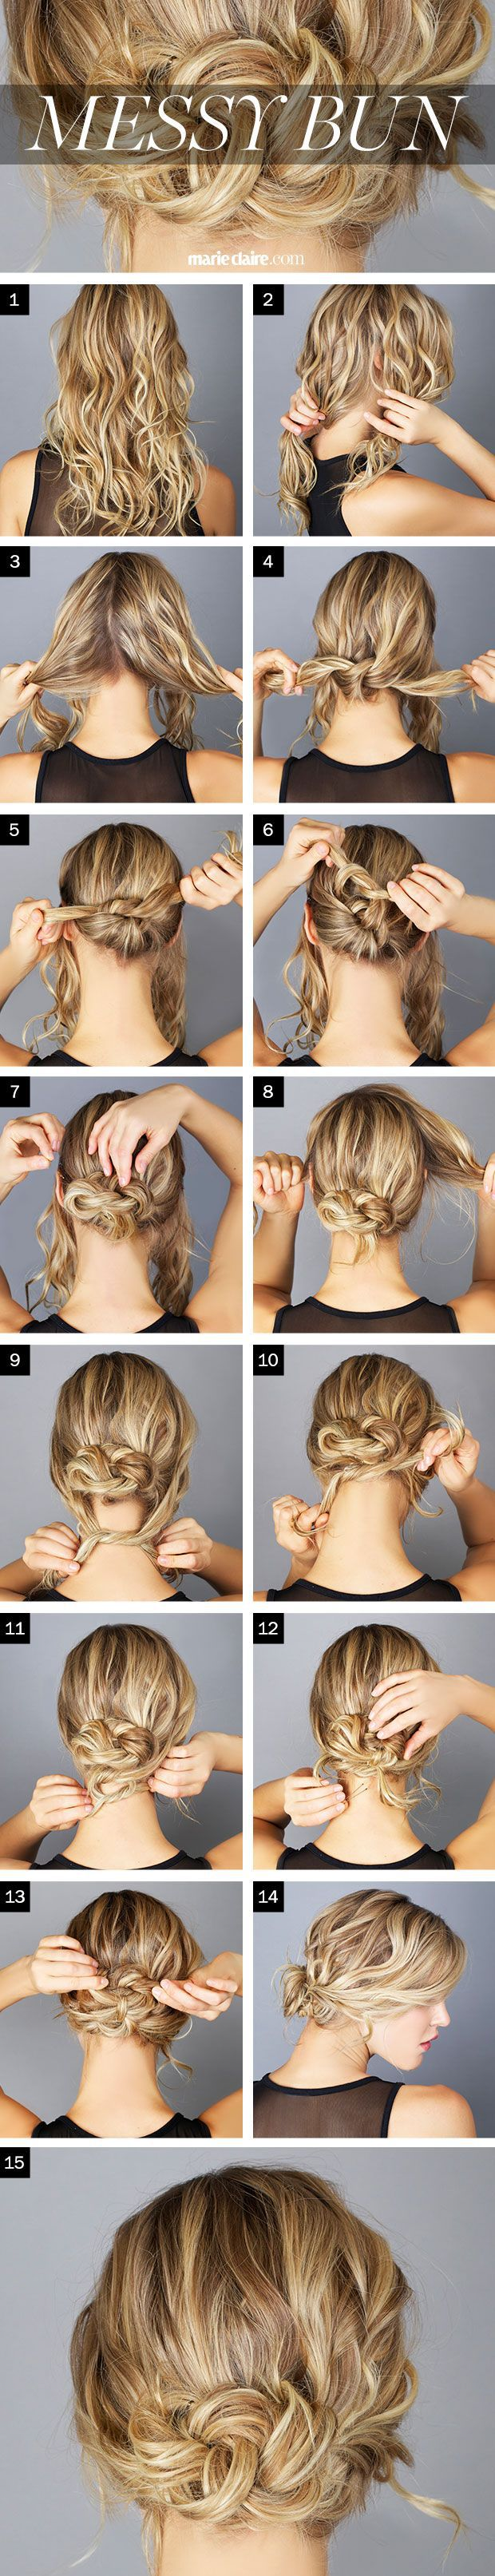 best hair braids images on pinterest cute hairstyles hairstyle